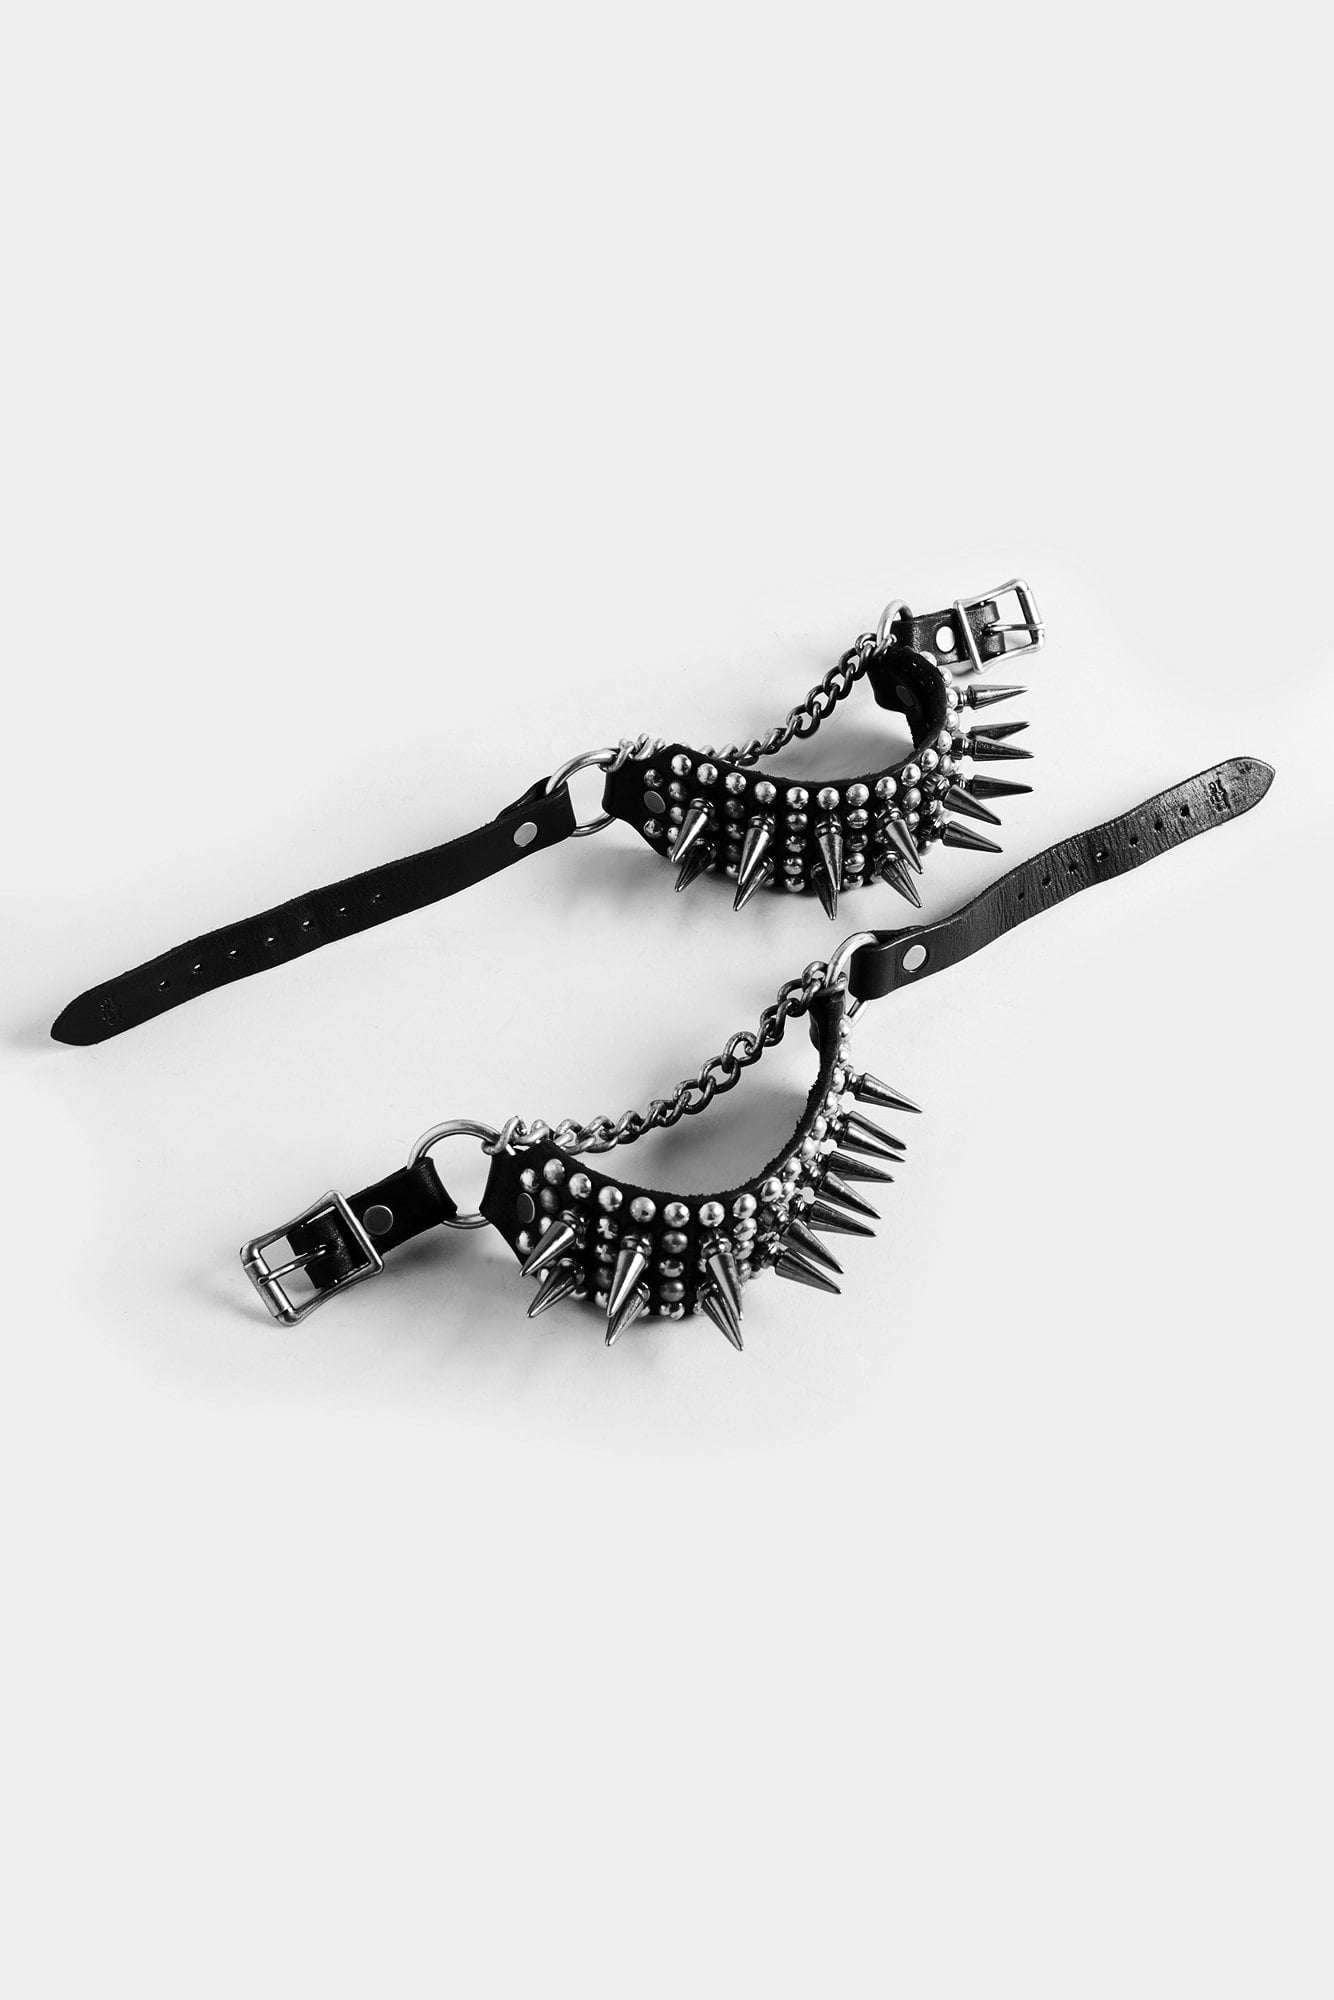 Studded Boot Harness Straps with Spikes